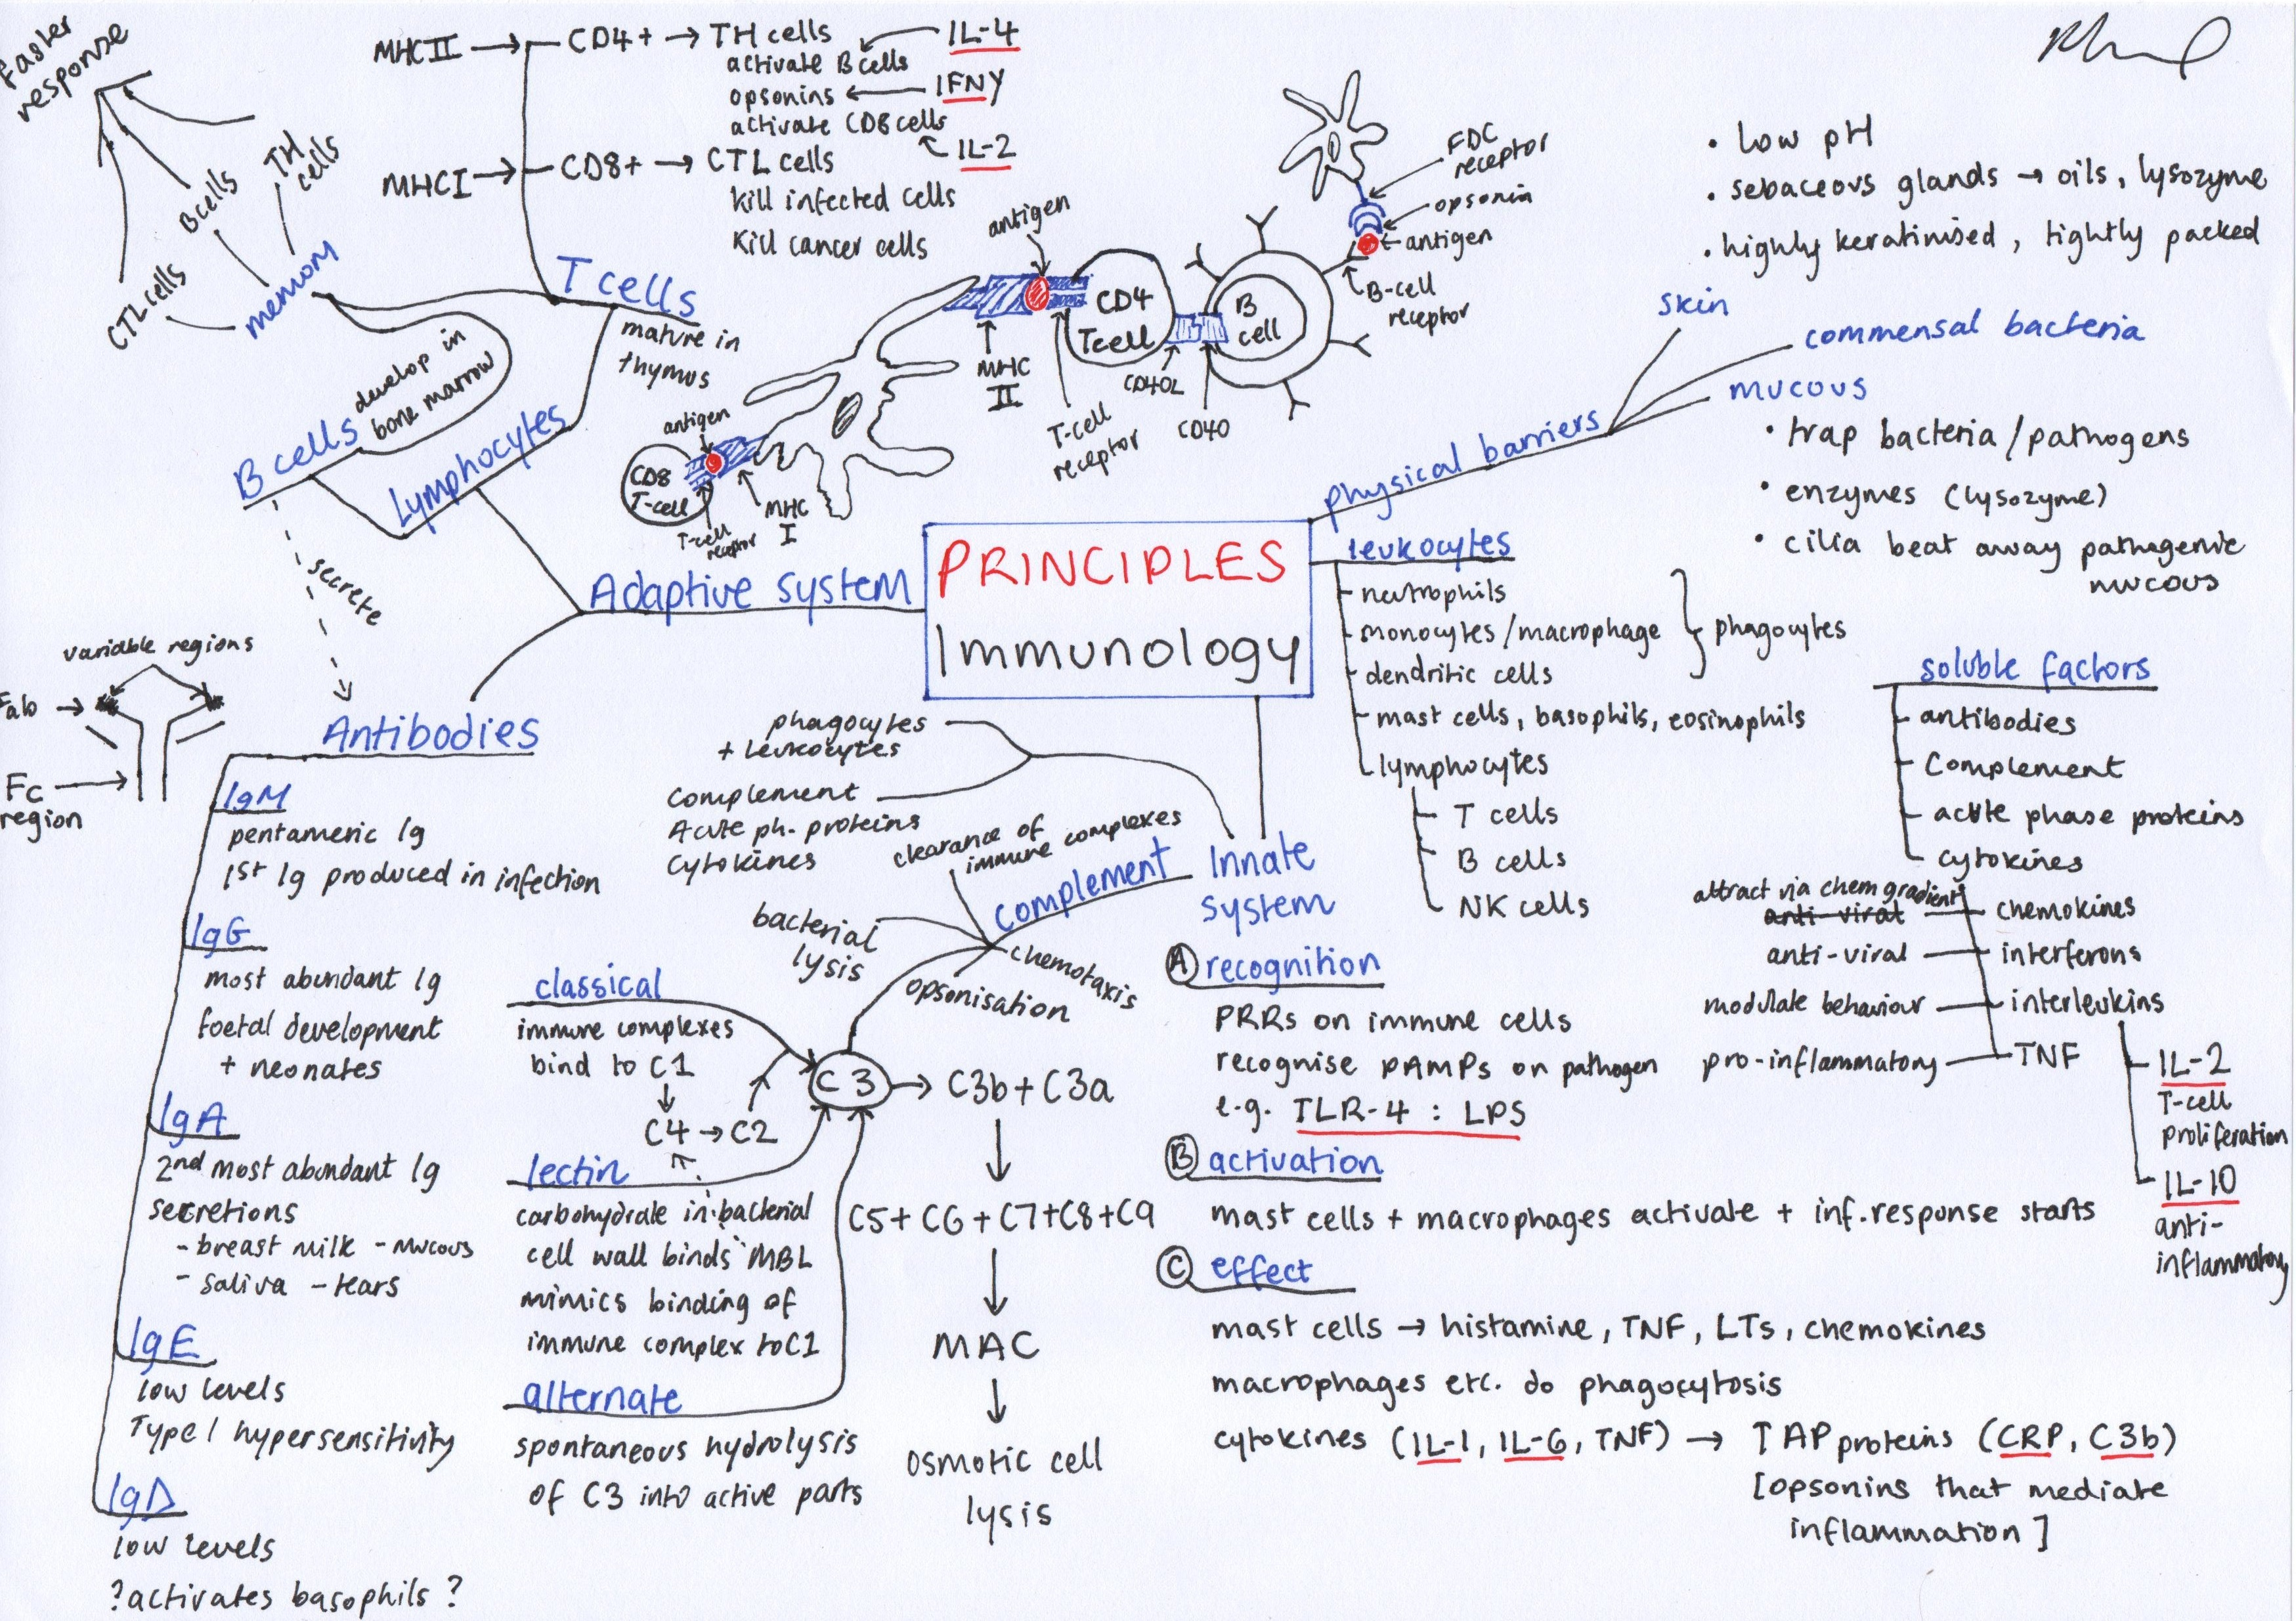 Adaptive Immunity Concept Map.Immunology Principles Mindmap On Meducation